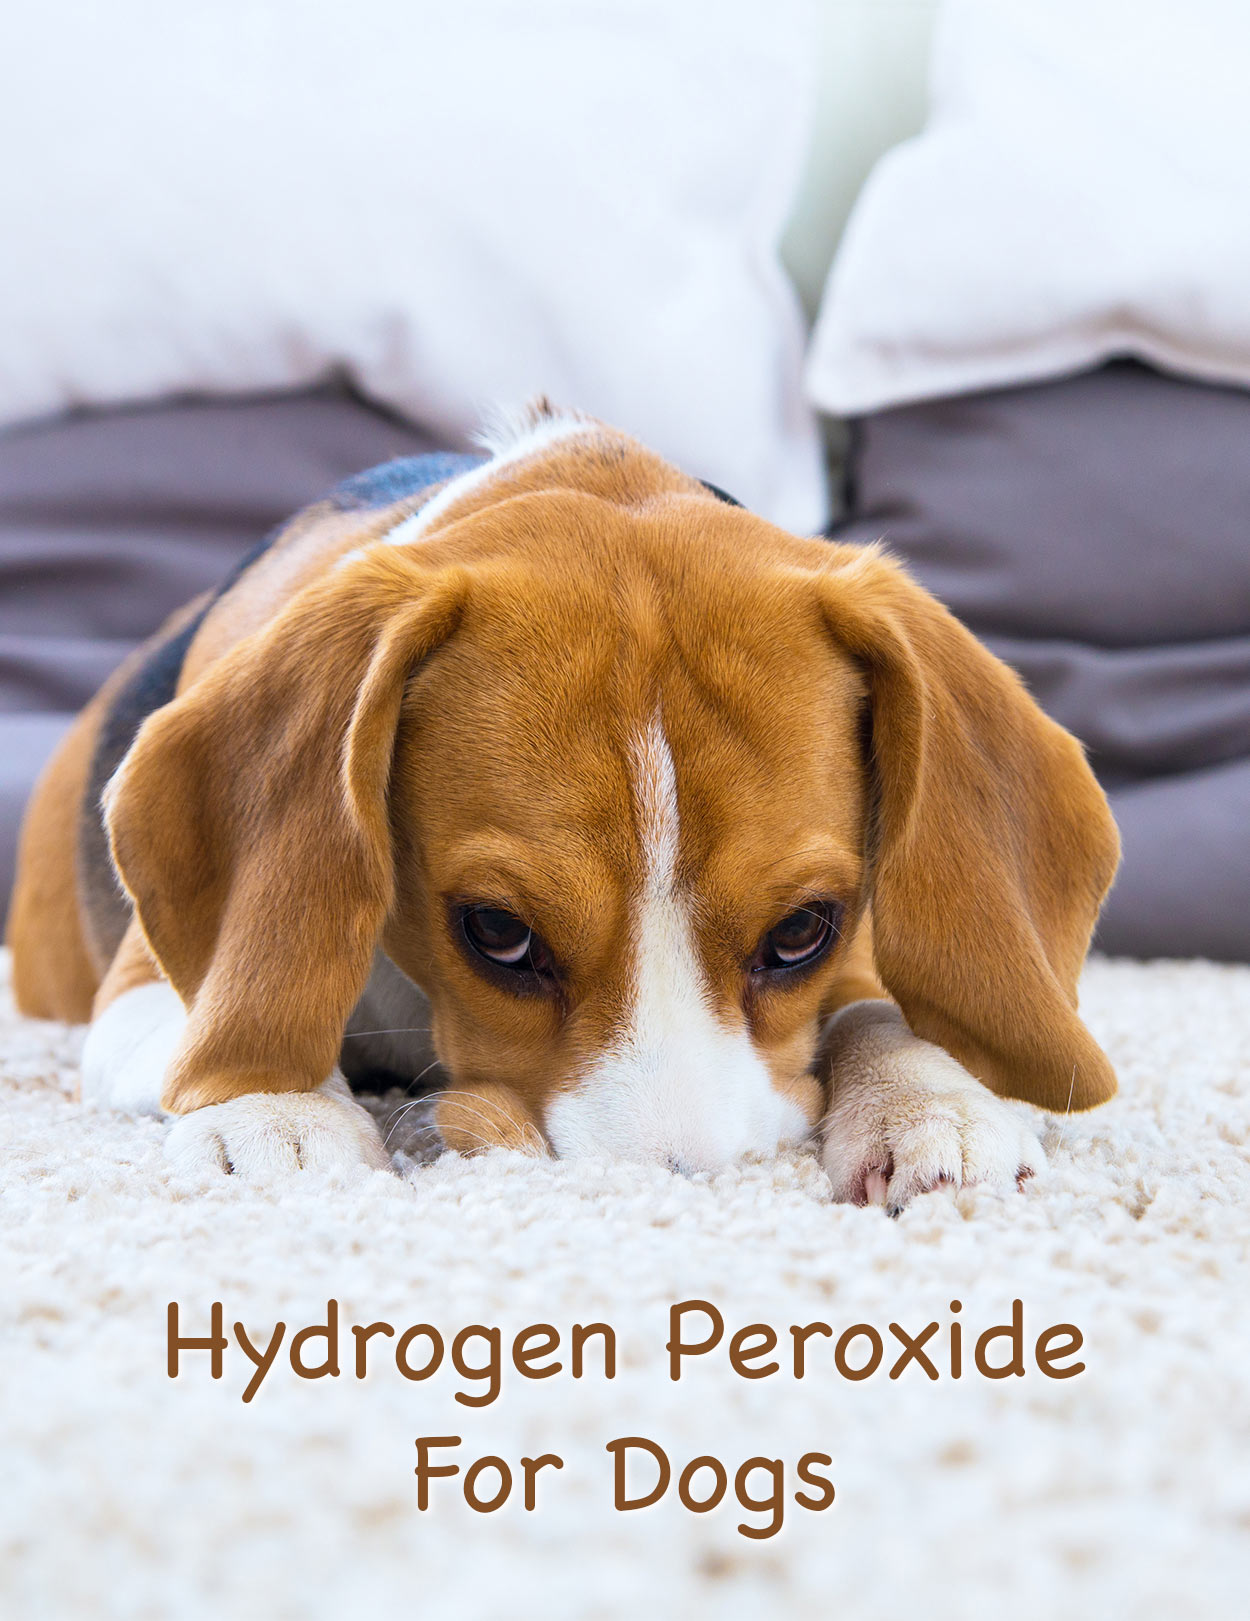 Hydrogen Peroxide For Dogs - What Can I Use It For Safely?